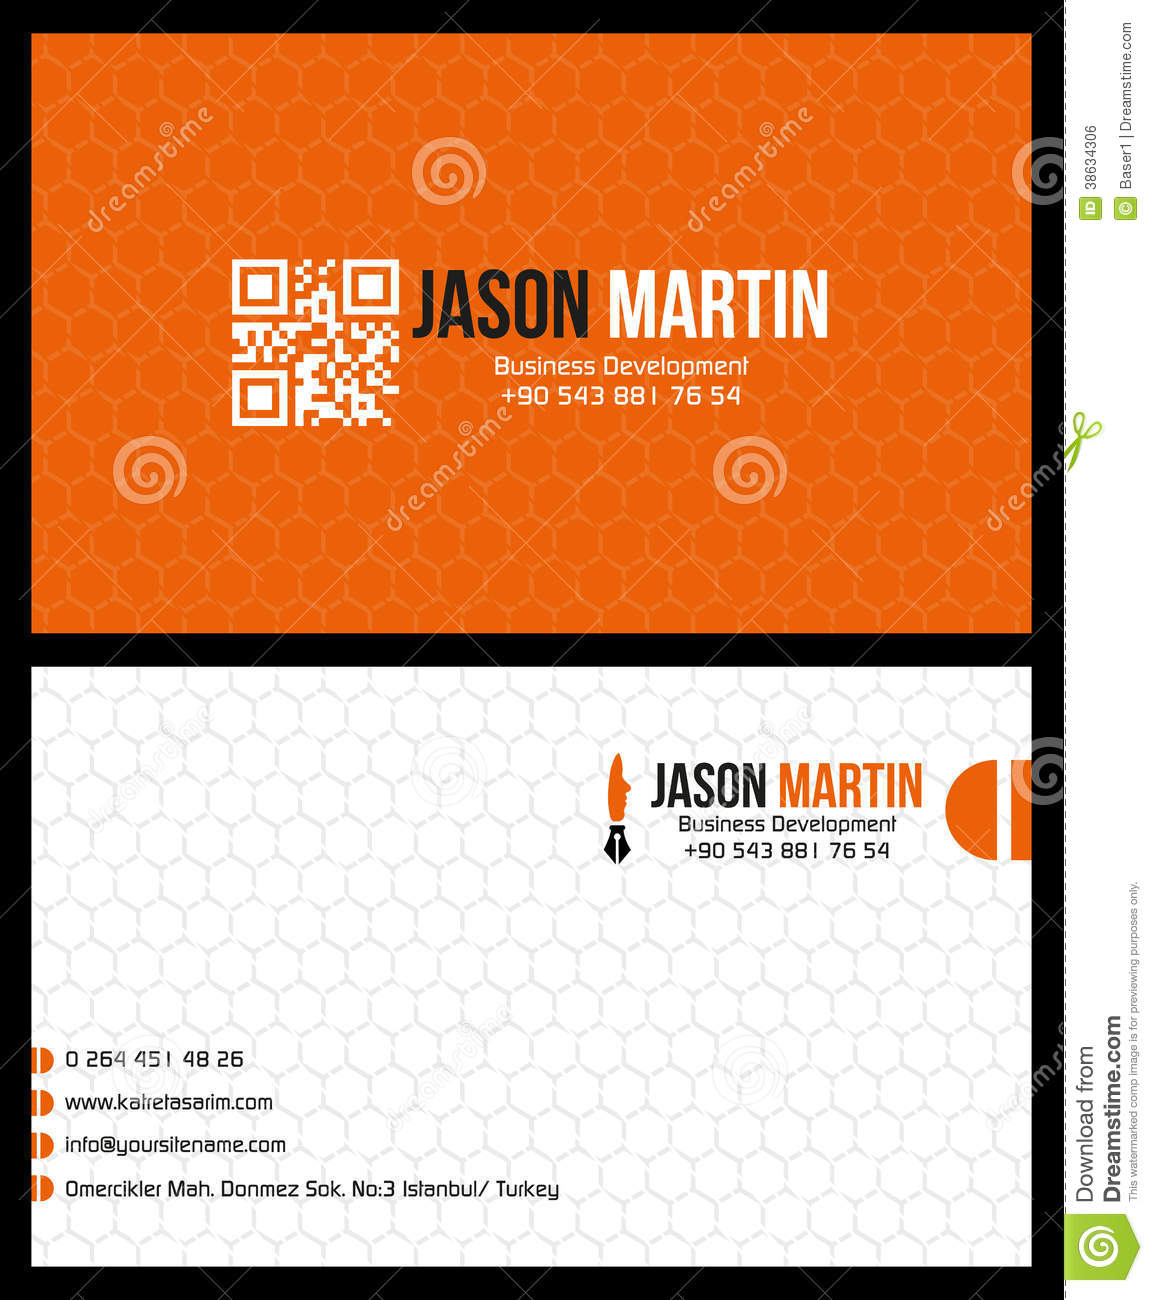 Royalty Free Stock Image Business Card Image